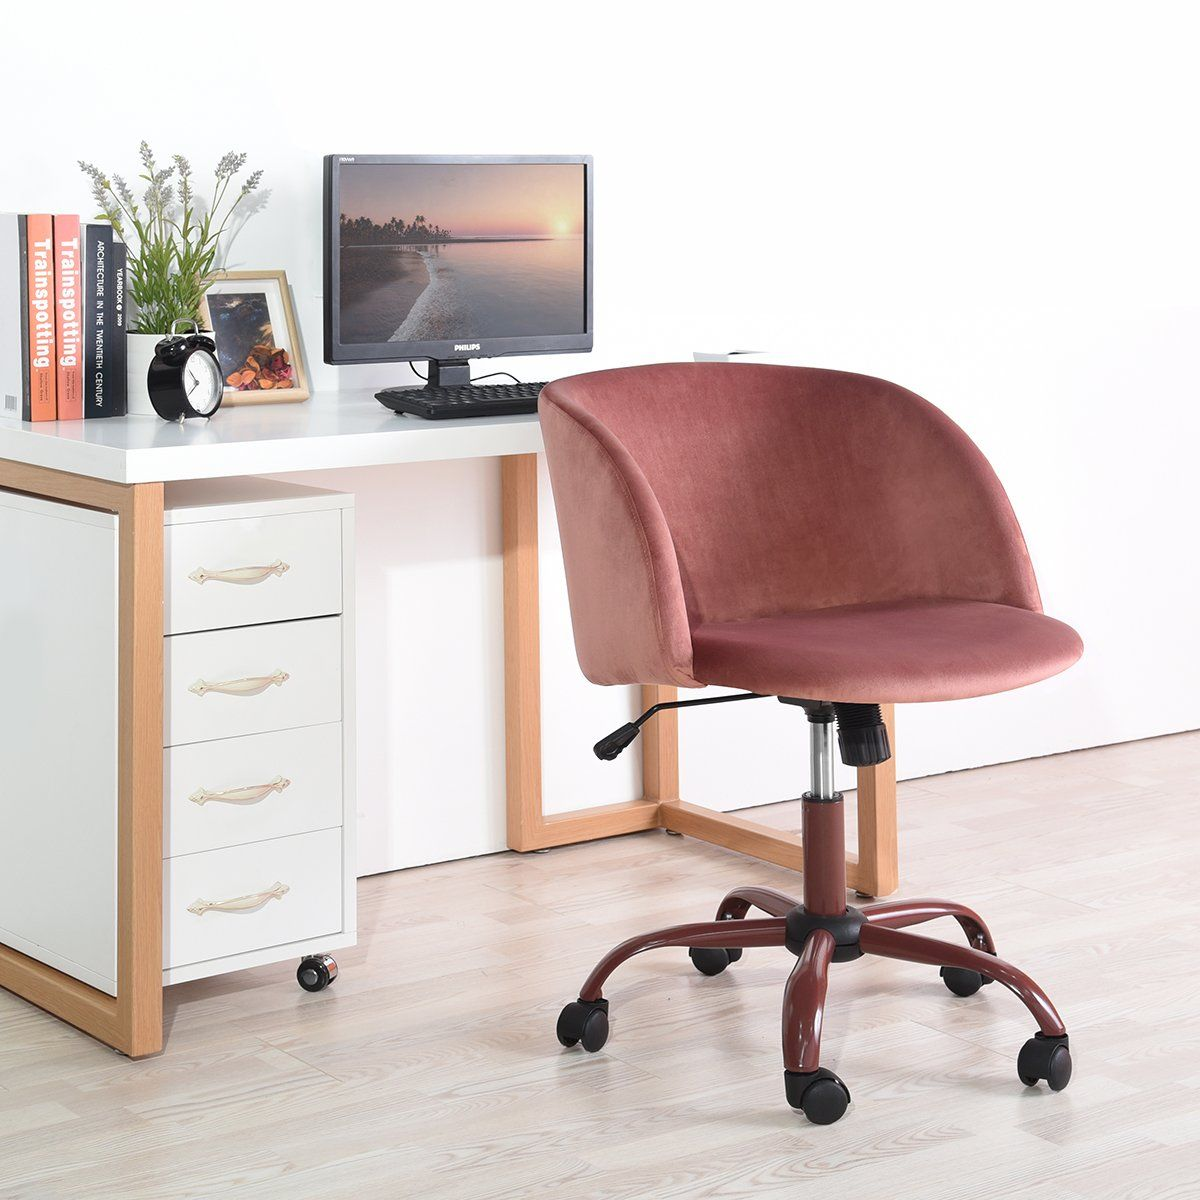 Eggree Midback Swivel Computer Desk Chair Ergonomic Modern Accent